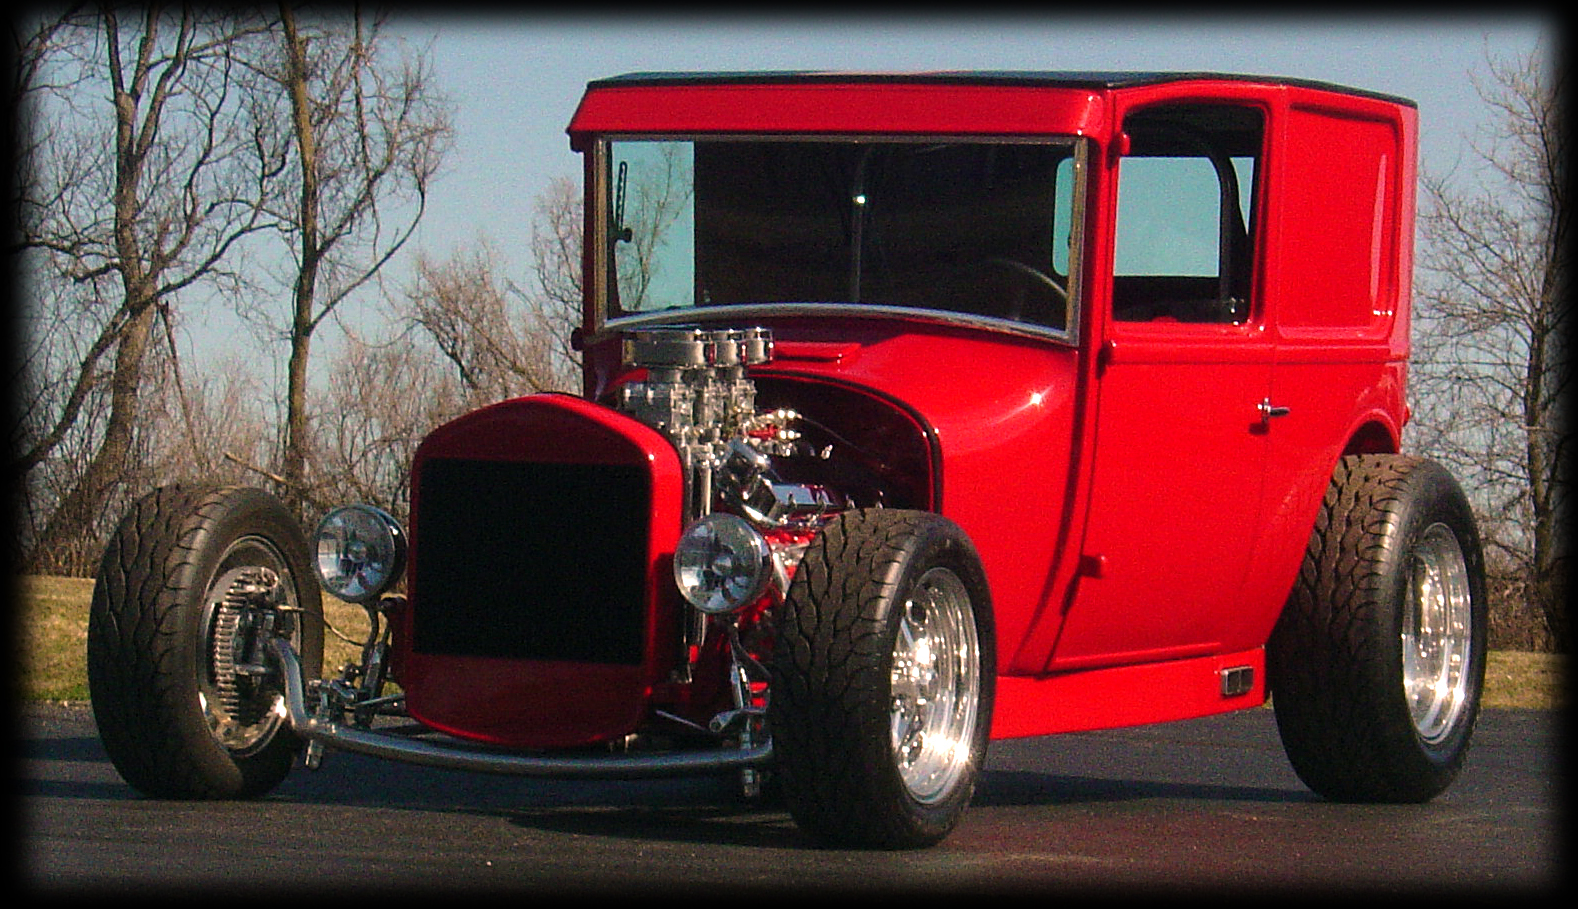 Search Results Hanks Truck Show Pictures.html